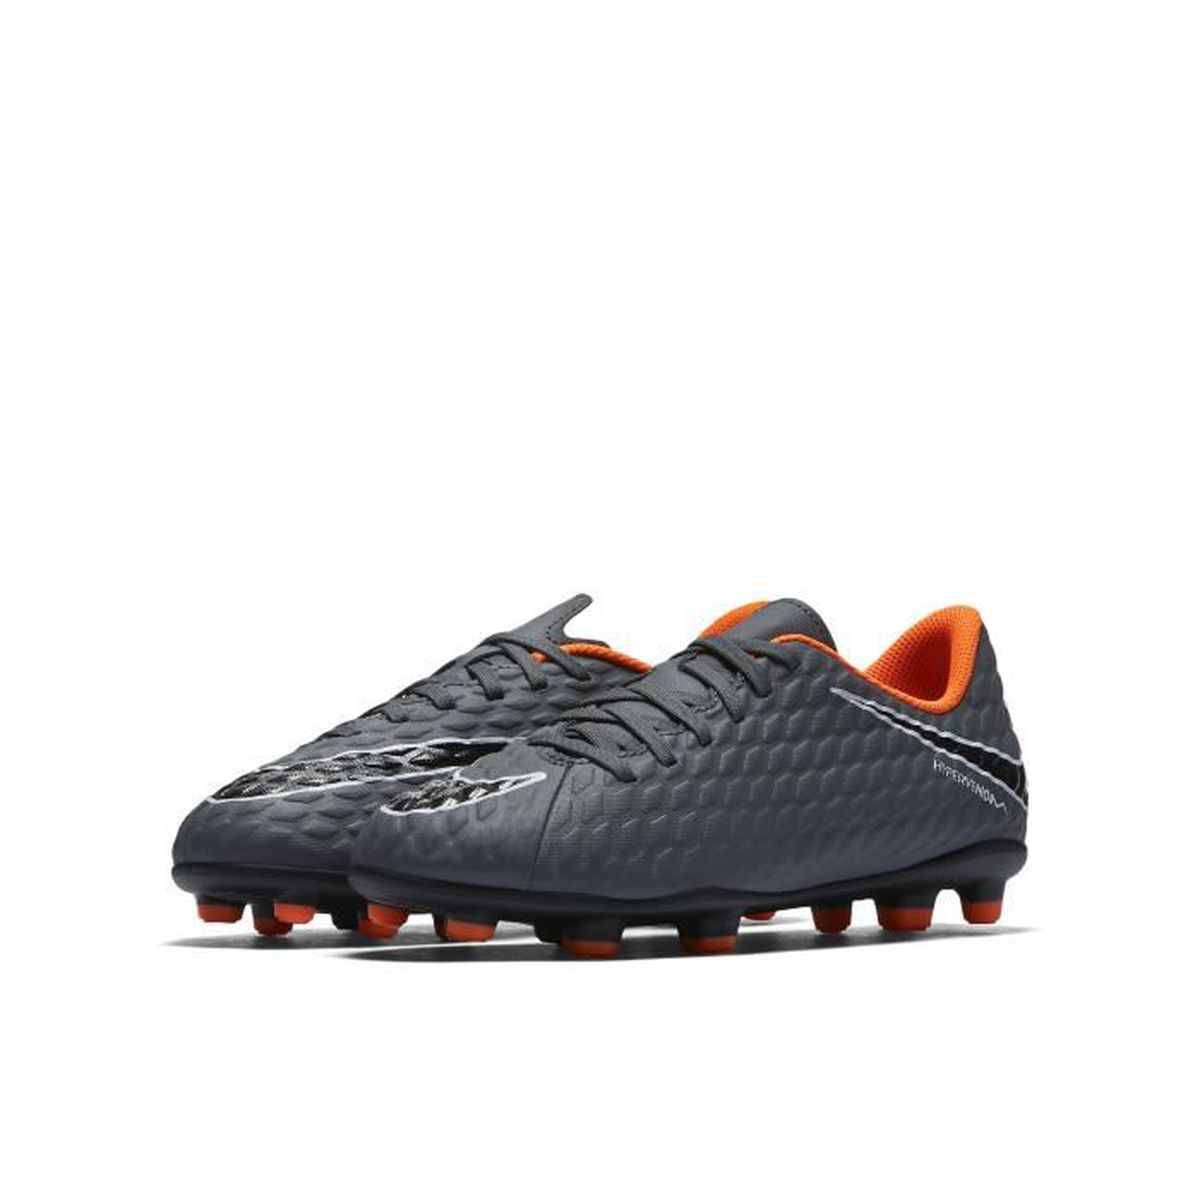 new arrival 3c7ac 0be0d CHAUSSURES DE FOOTBALL Nike Jr. Hypervenom Phantom 3 Club FG, Sol ferme,